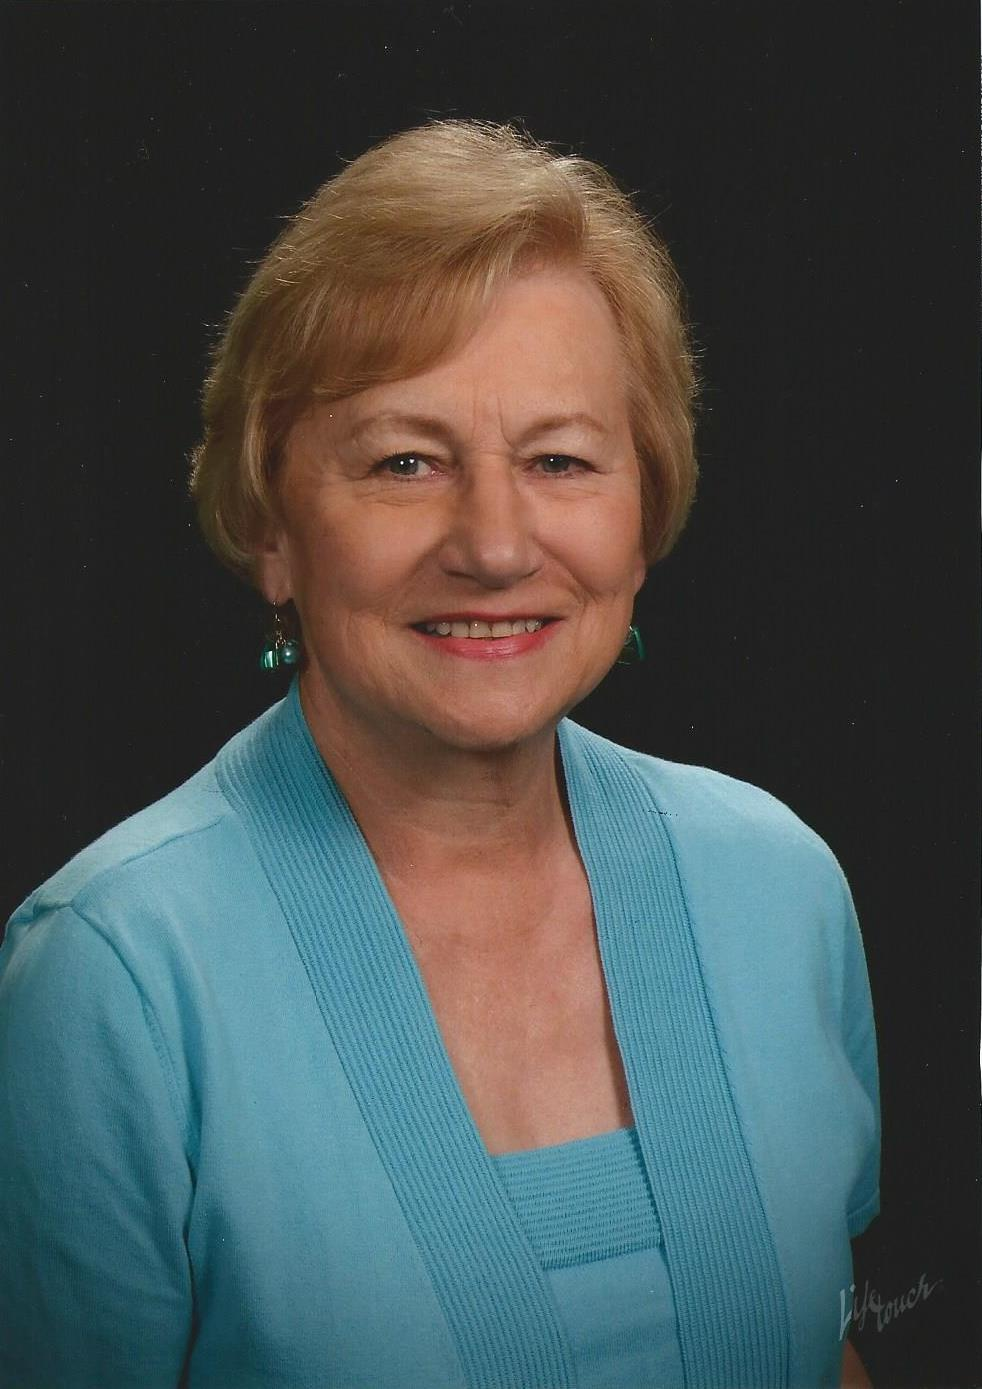 Louisianas first female 4-H director to be inducted into National 4-H Hall of Fame